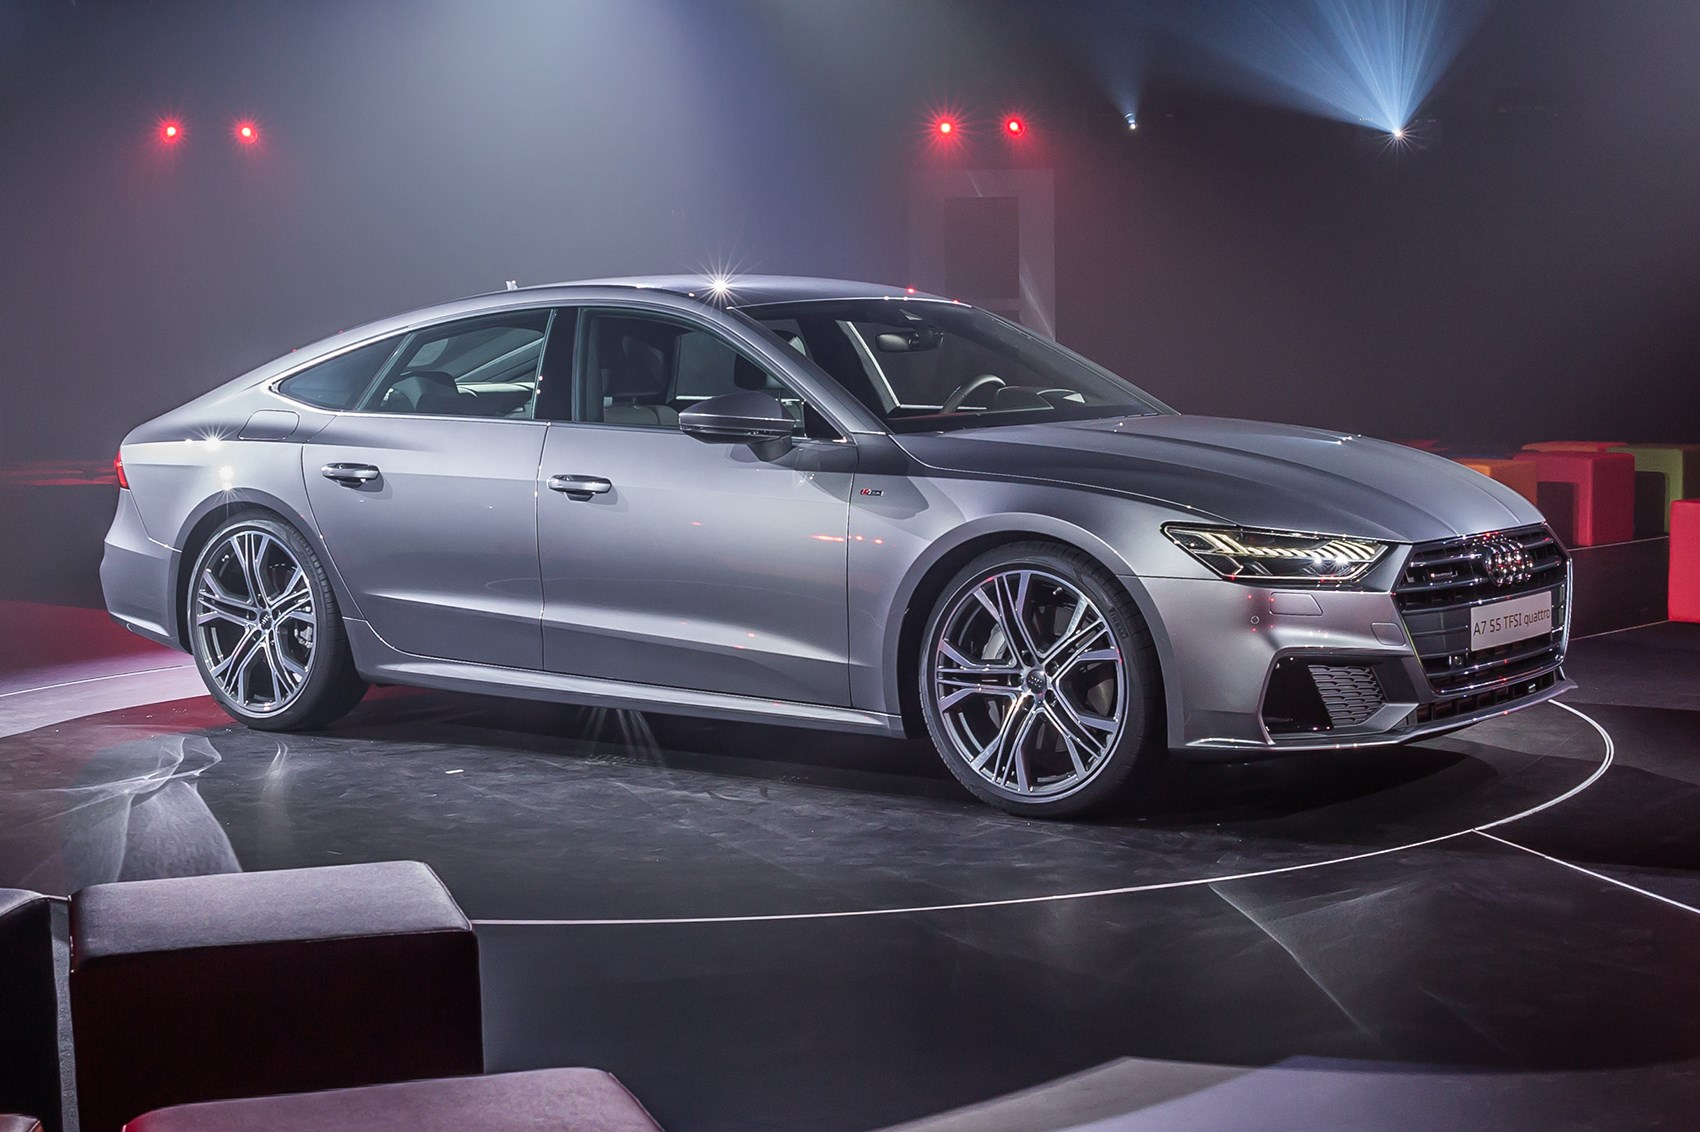 2018 Audi A7 >> First look: 2018 Audi A7 – the A8's sleek and sporty new ...